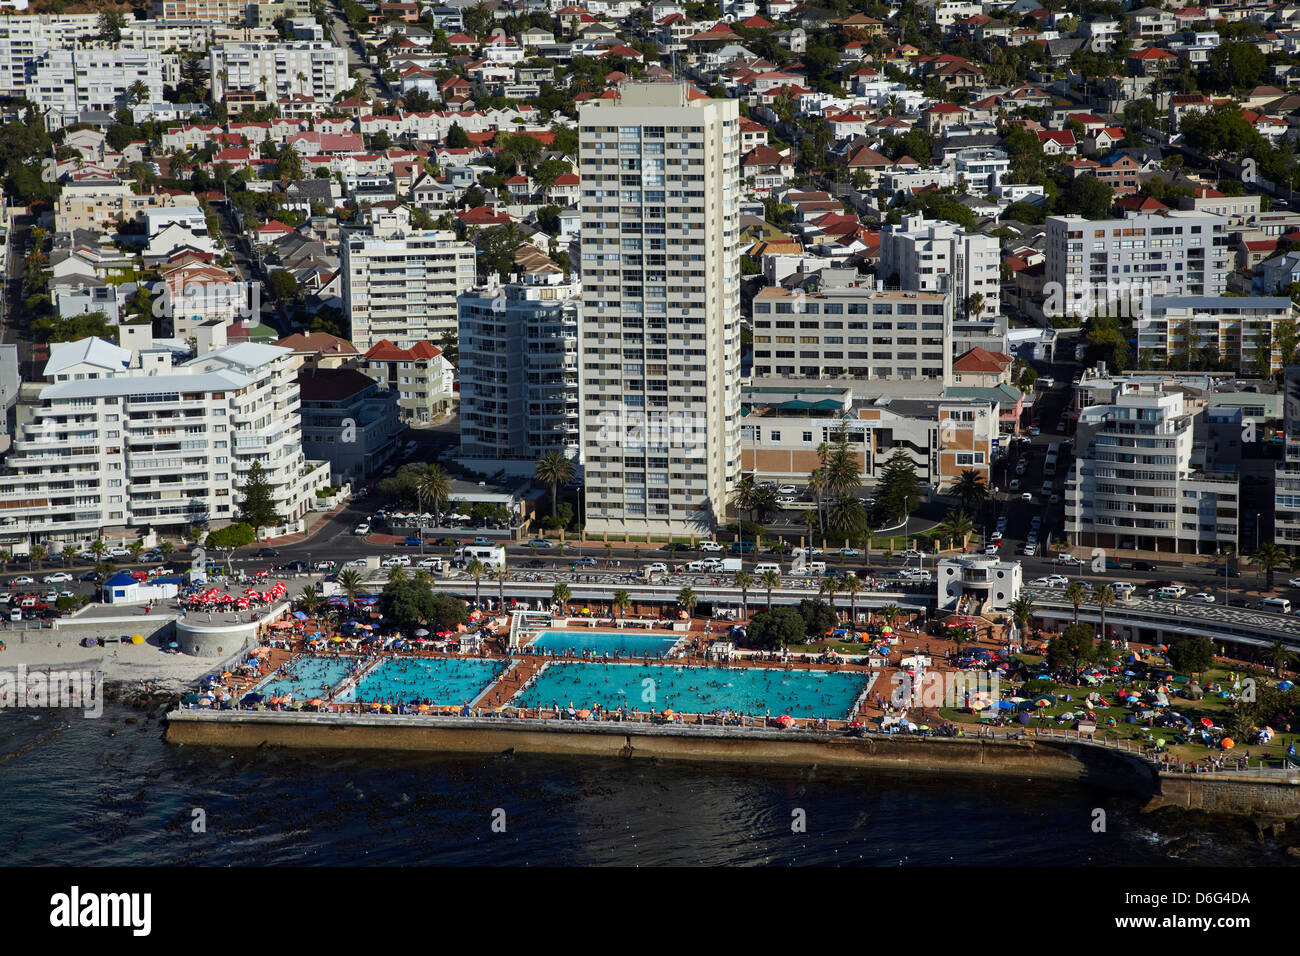 Zwembad Oberhausen Crowded Pool Stock Photos And Crowded Pool Stock Images Alamy